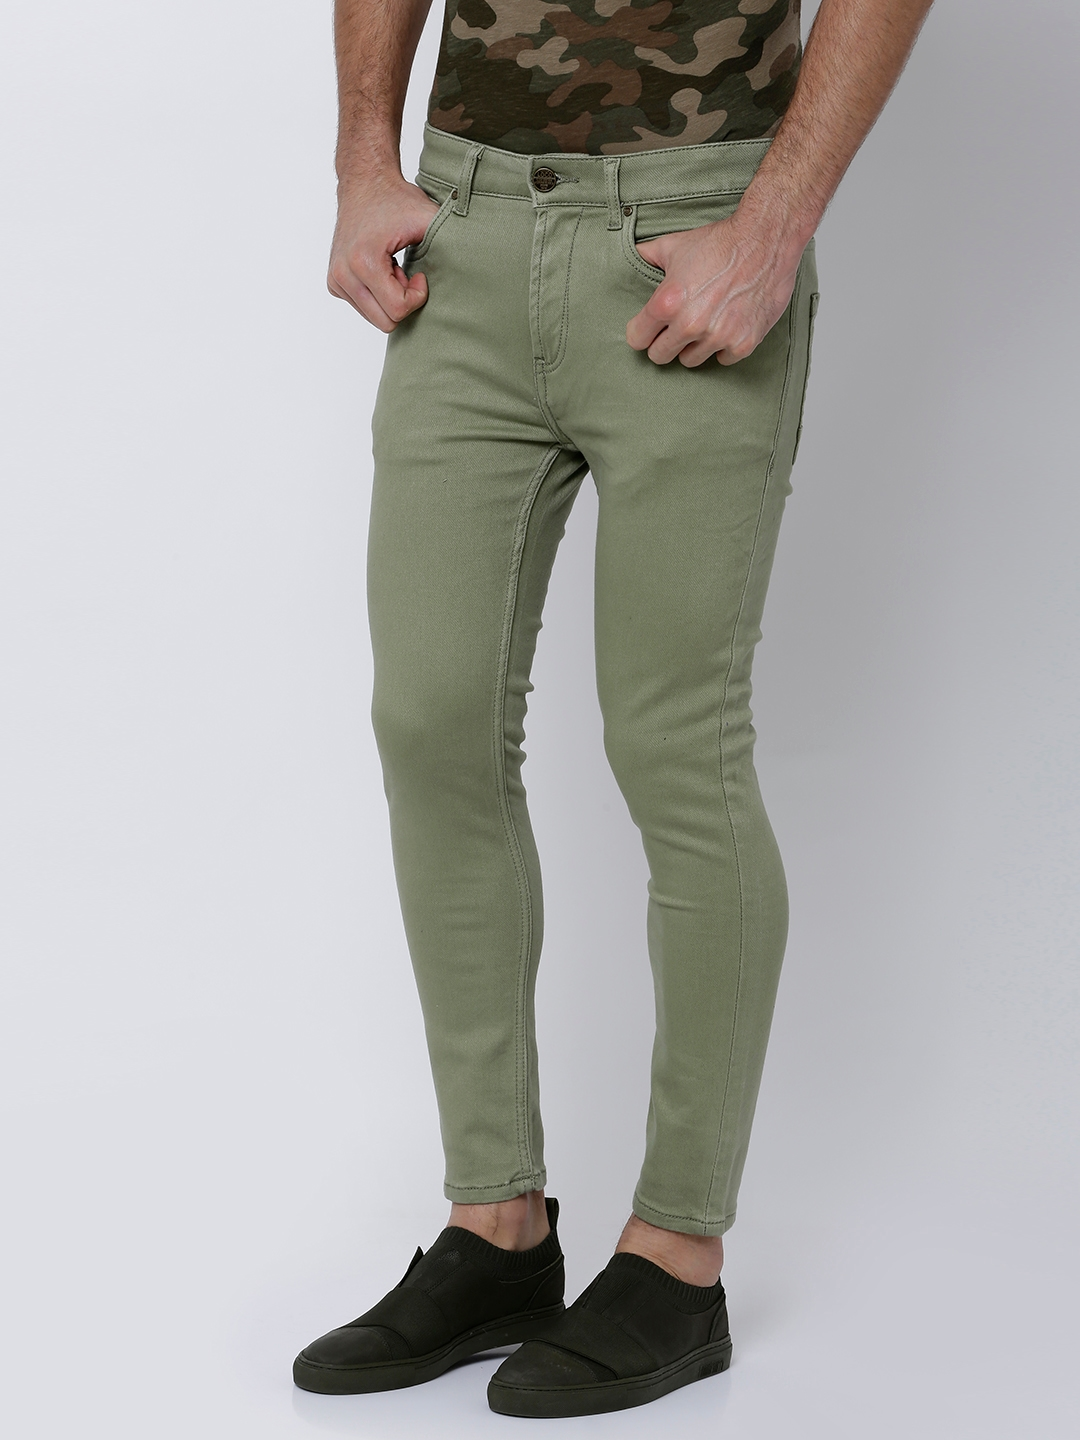 e66120f0 Buy LOCOMOTIVE Men Olive Green Skinny Fit Mid Rise Clean Look ...